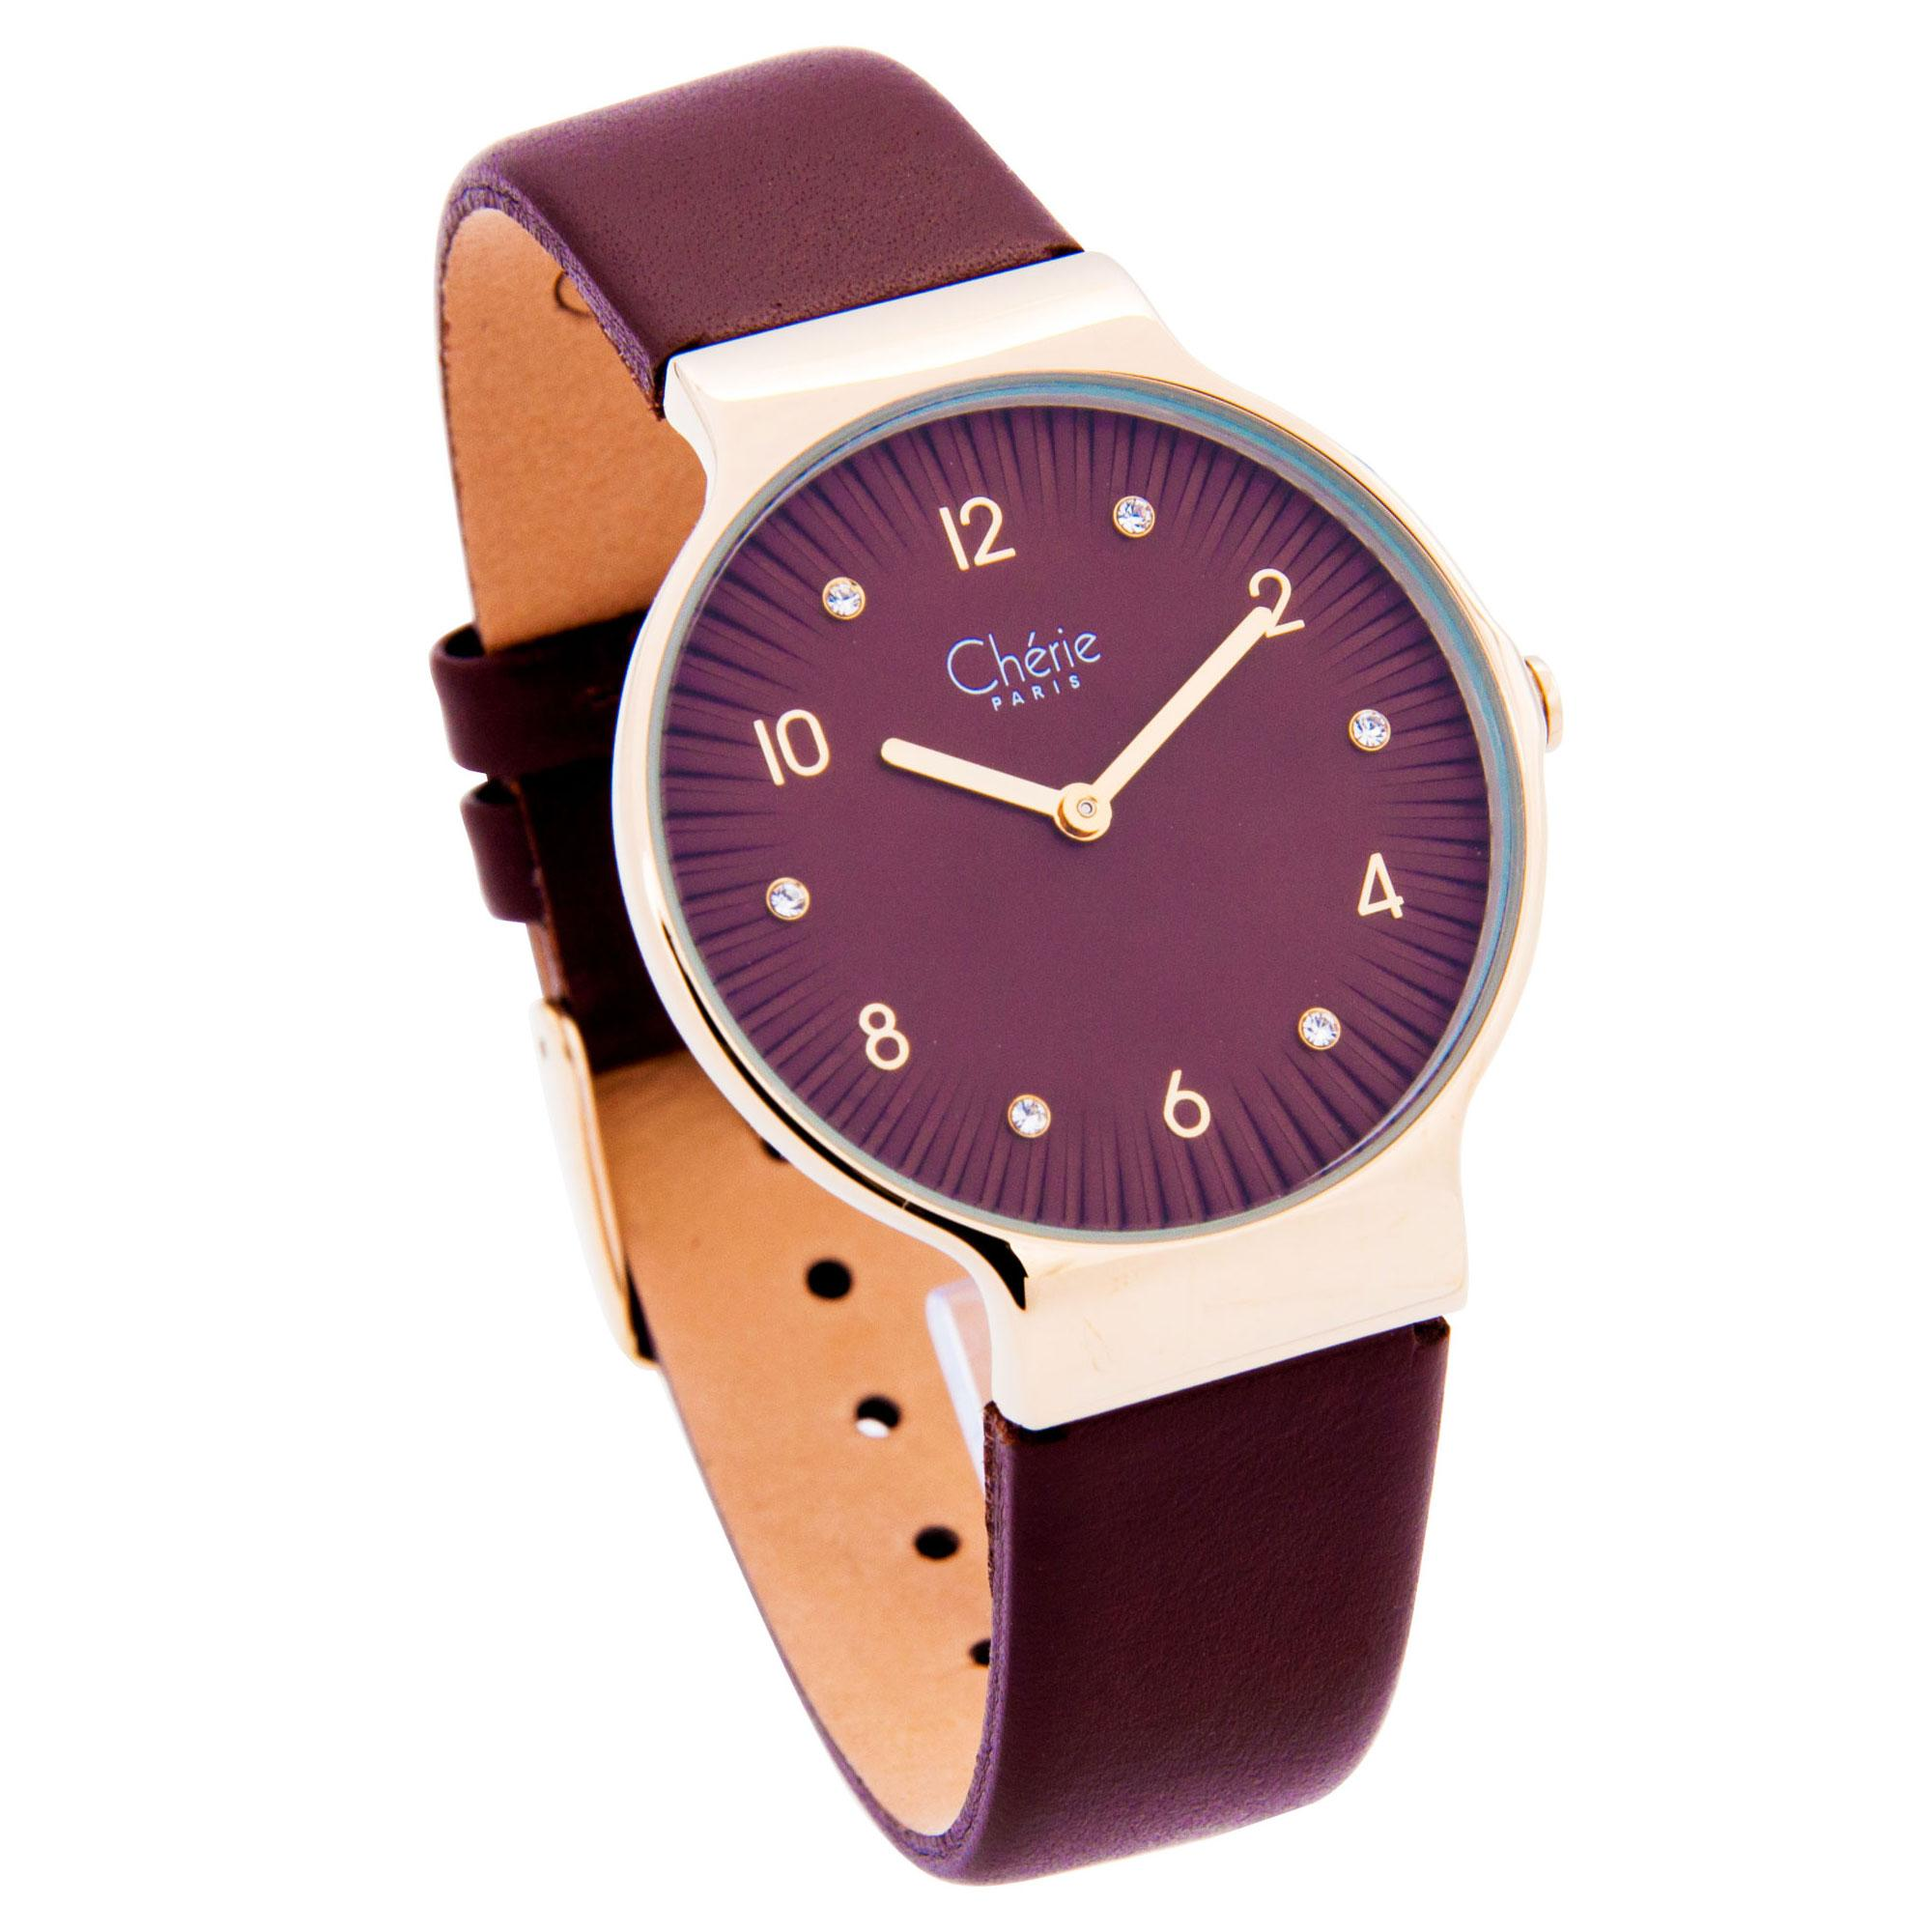 Cherie Paris Cara Women Leather Strap Analog Watch CHR-1760L (Fashion Collection) -